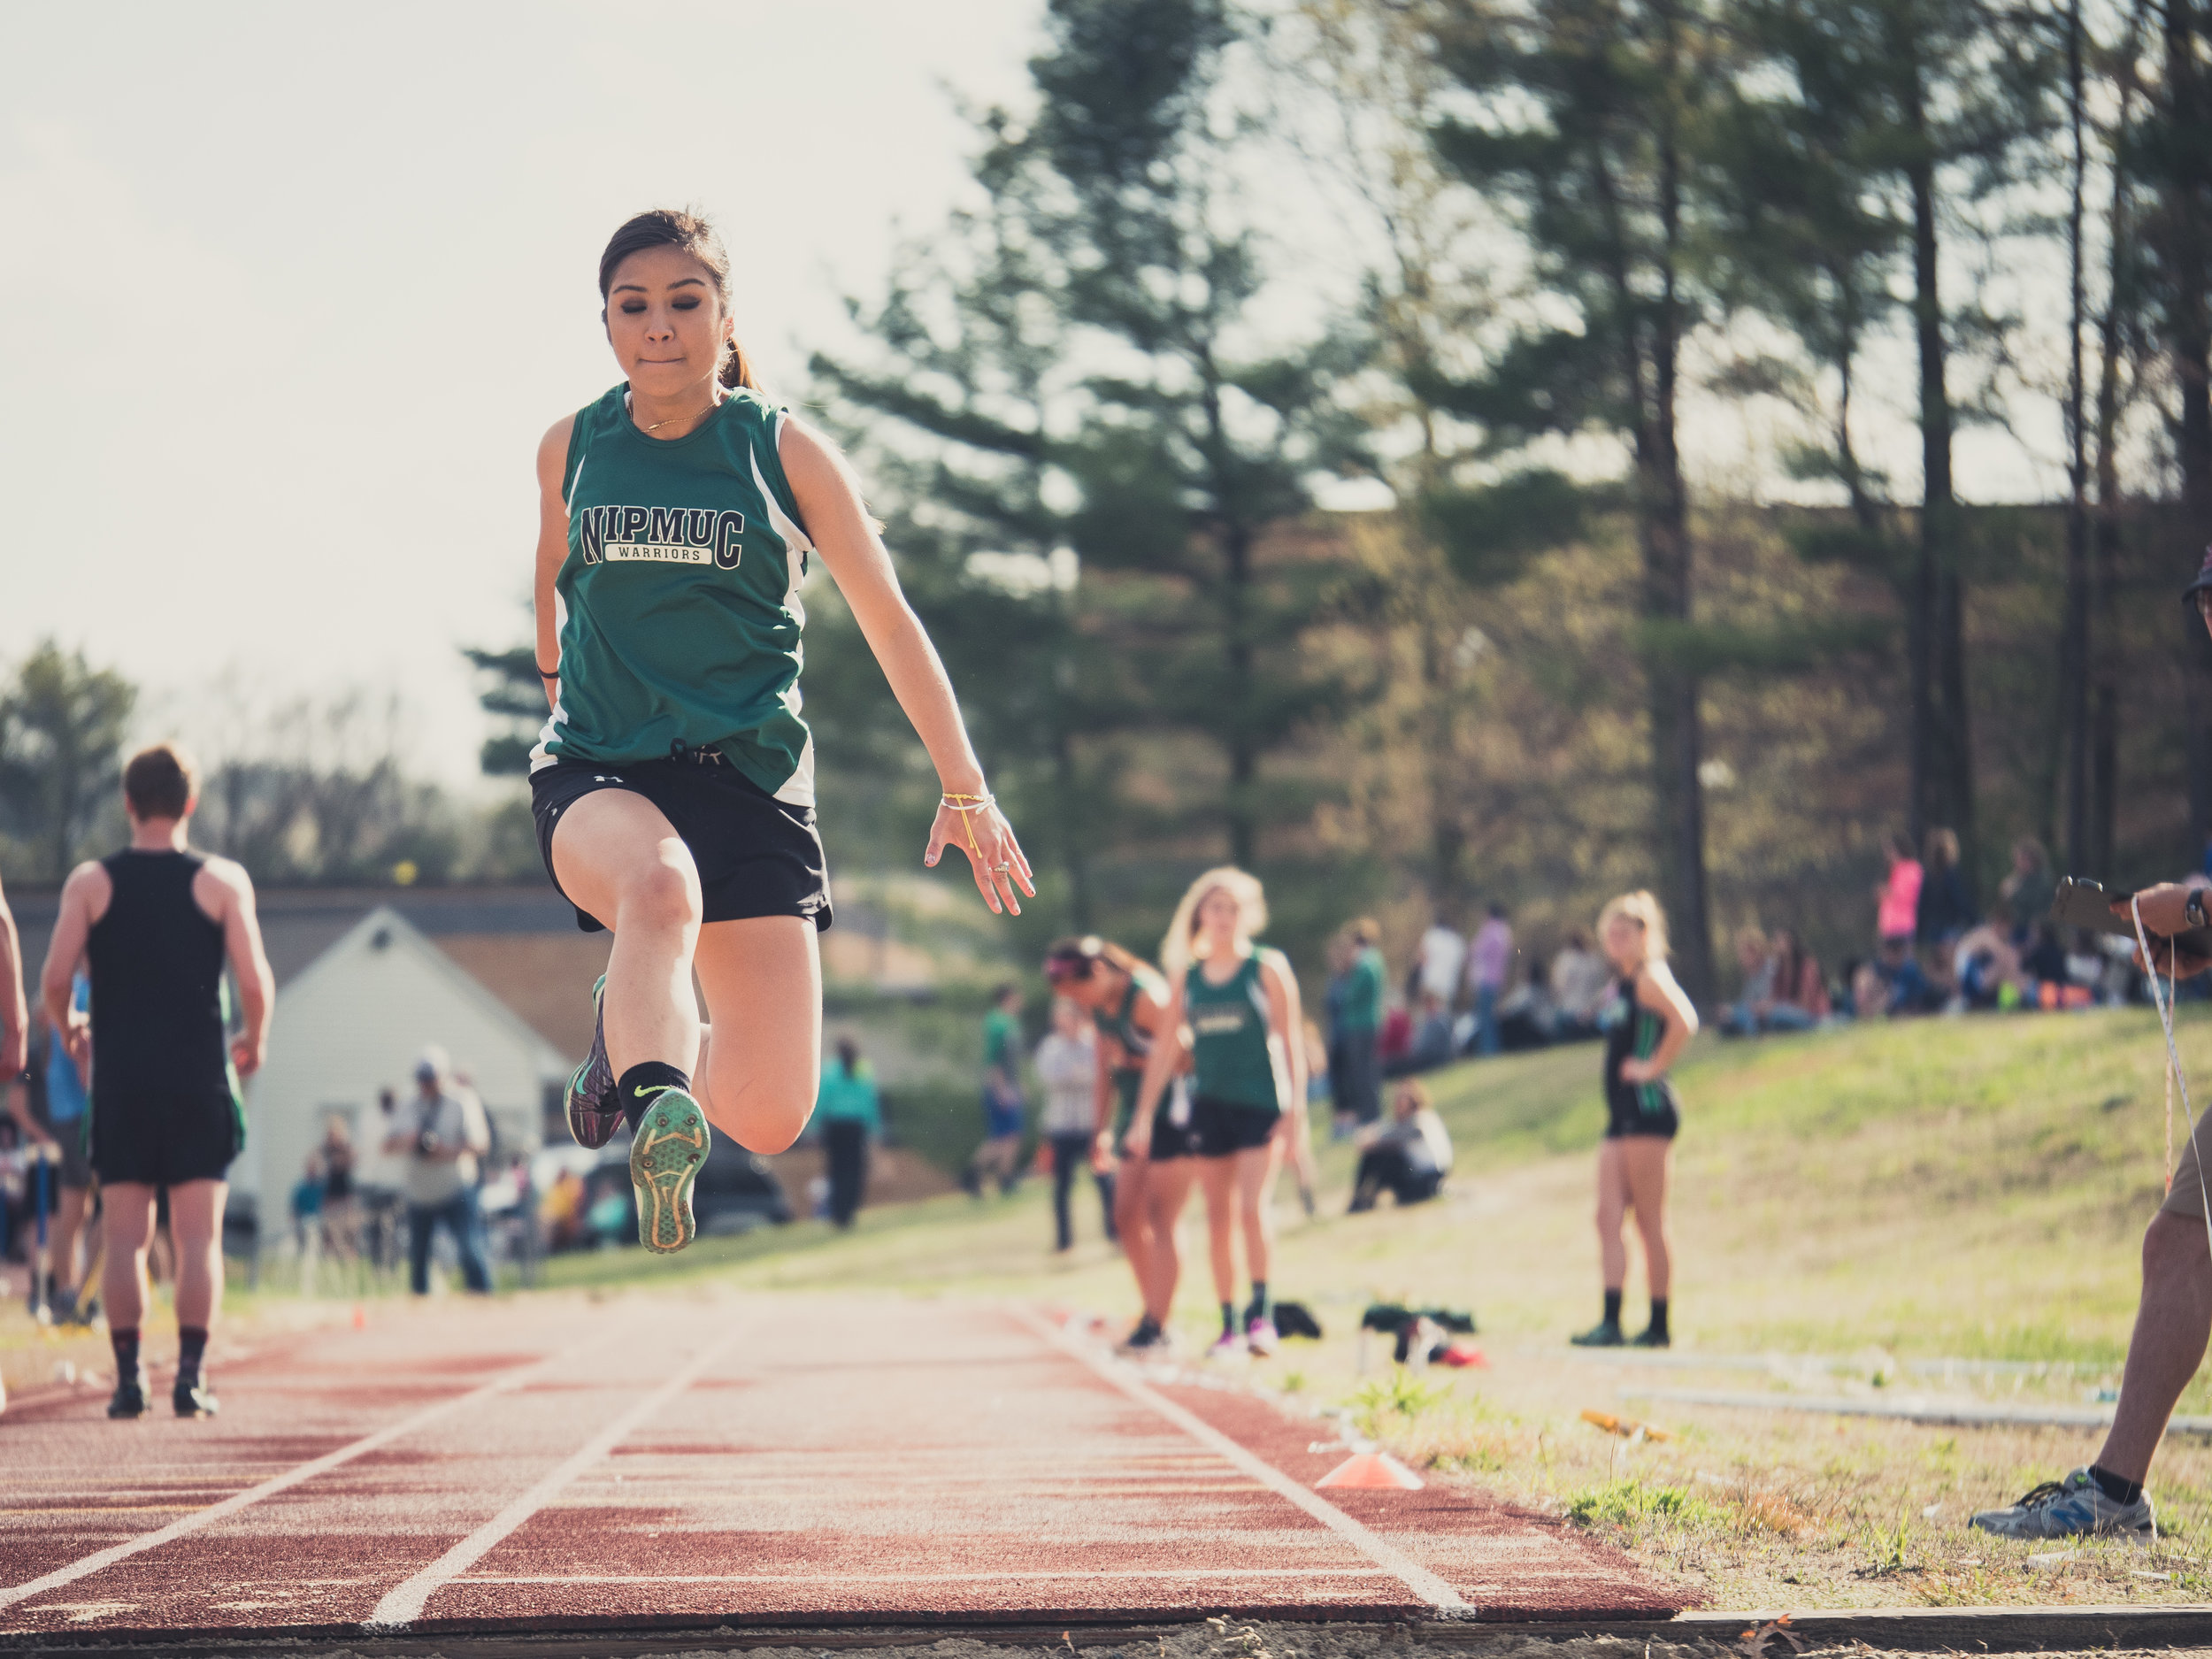 The first event was the Triple Jump. I took a lot of shots as the girls advanced in rounds but this one is my favorite.